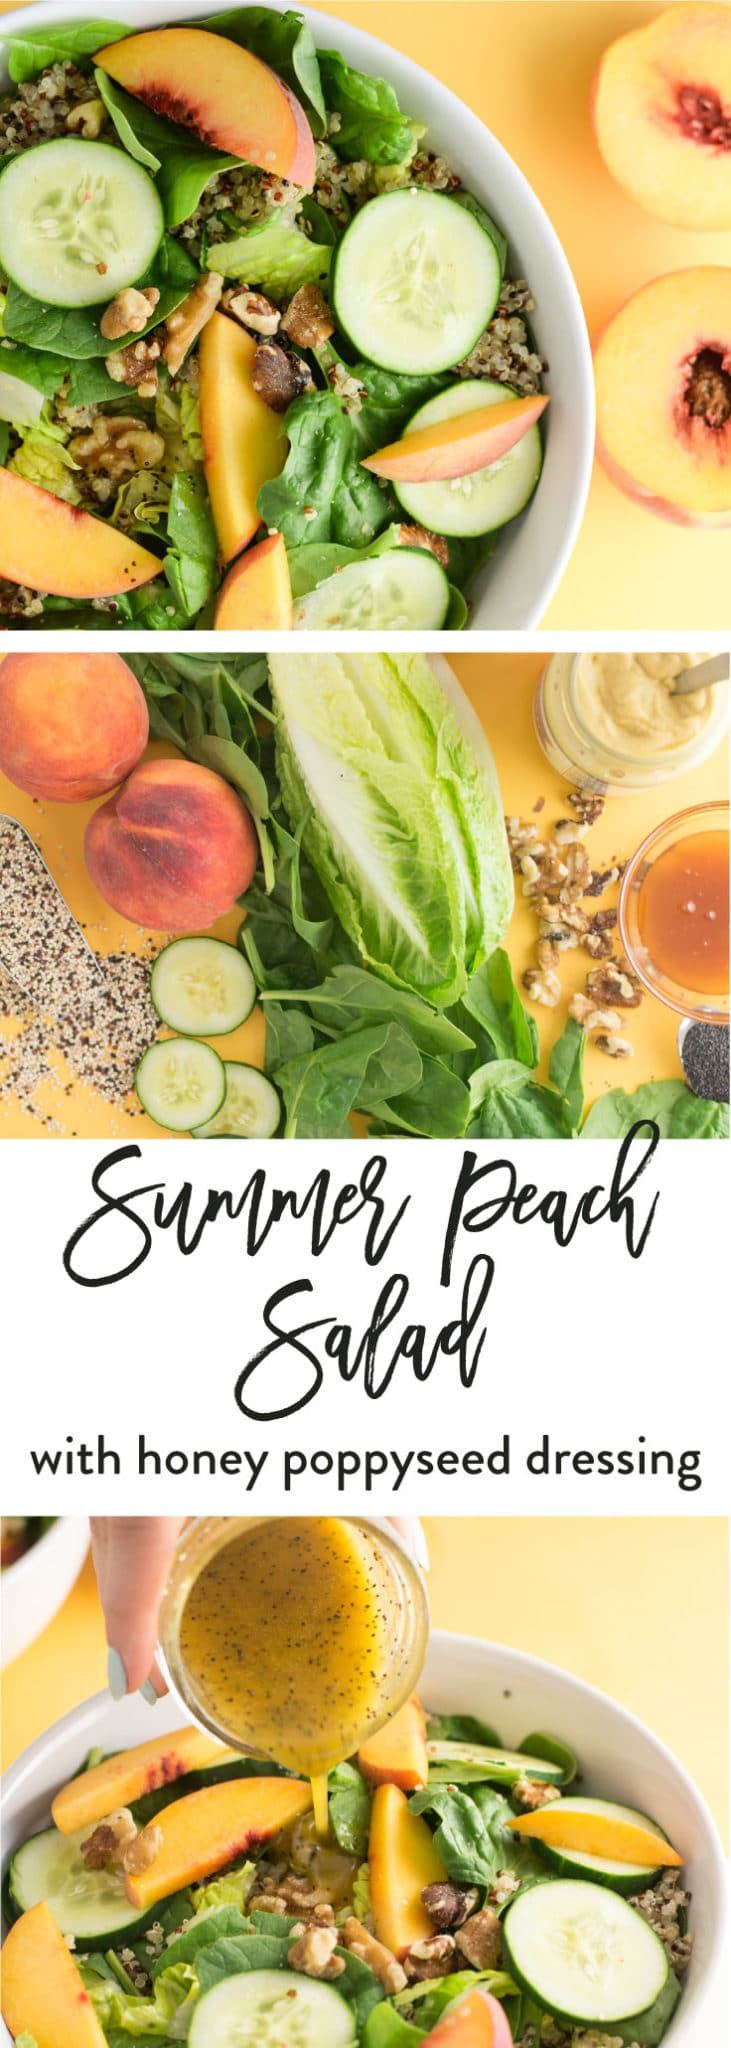 Summer Peach Salad with Honey Poppyseed Dressing -- This summer salad recipe is everything you need for a healthy lunch that showcases seasonal fruits and vegetables. Peaches, greens, walnuts, quinoa, and a sweet and tangy honey poppyseed dressing make this vegetarian salad a great lunch or addition to your dinner. - mindfulavocado